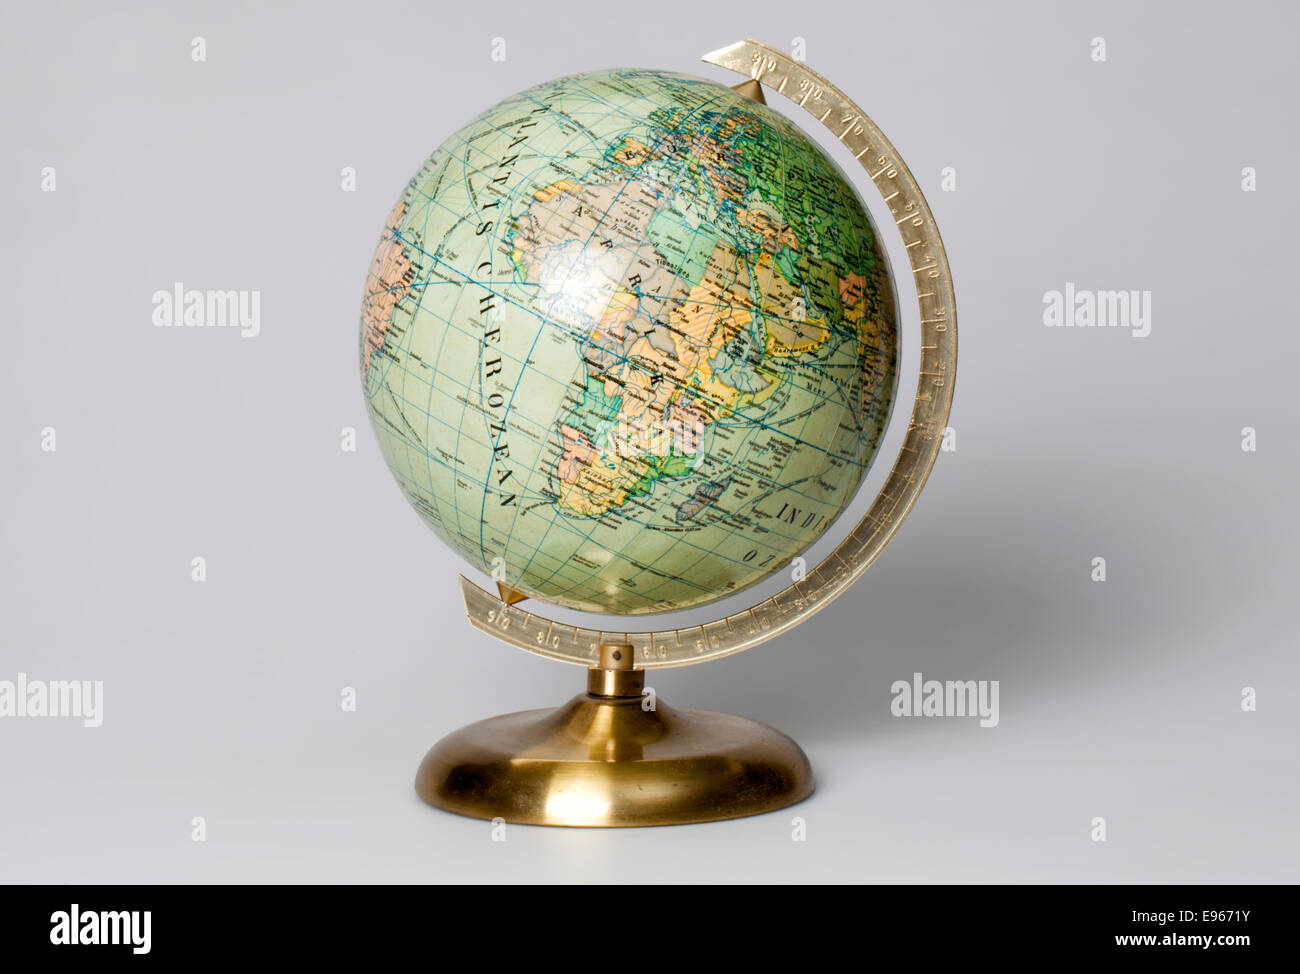 Old globe - Stock Image